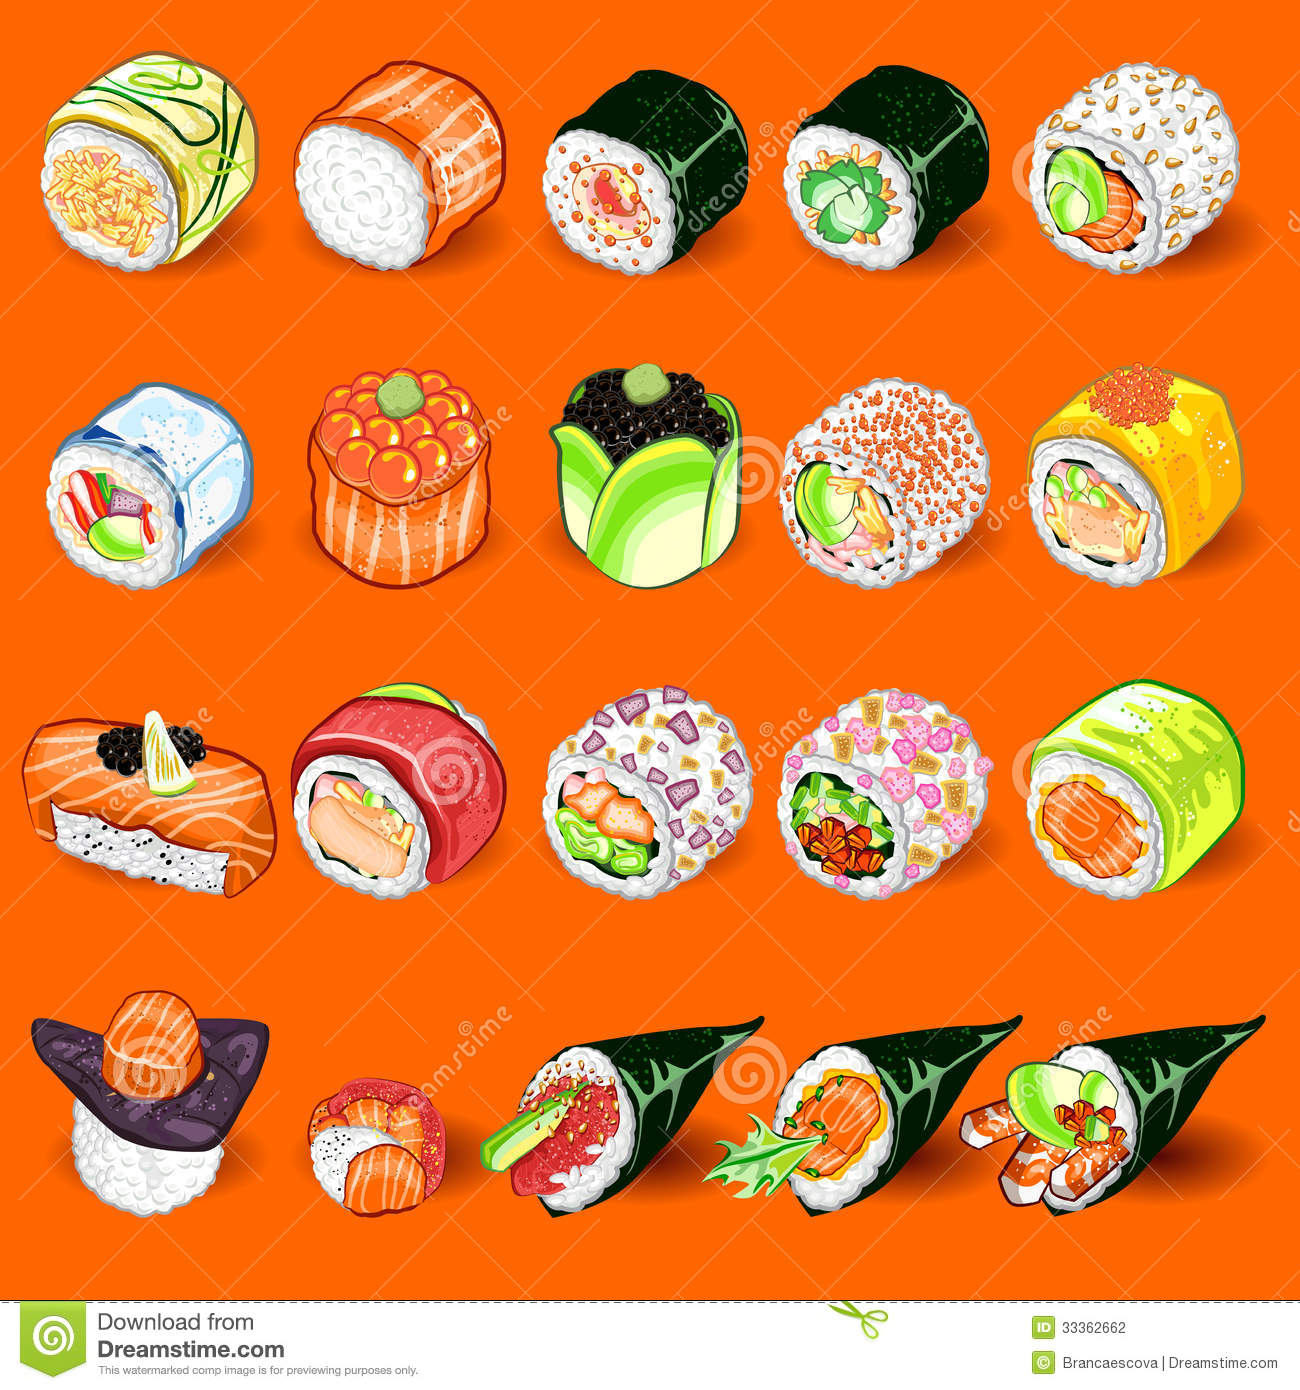 An Illustration Of Japanese Sushi Sashimi Collection Set. Useful As ...: www.dreamstime.com/stock-photography-japanese-sushi-collection-set...